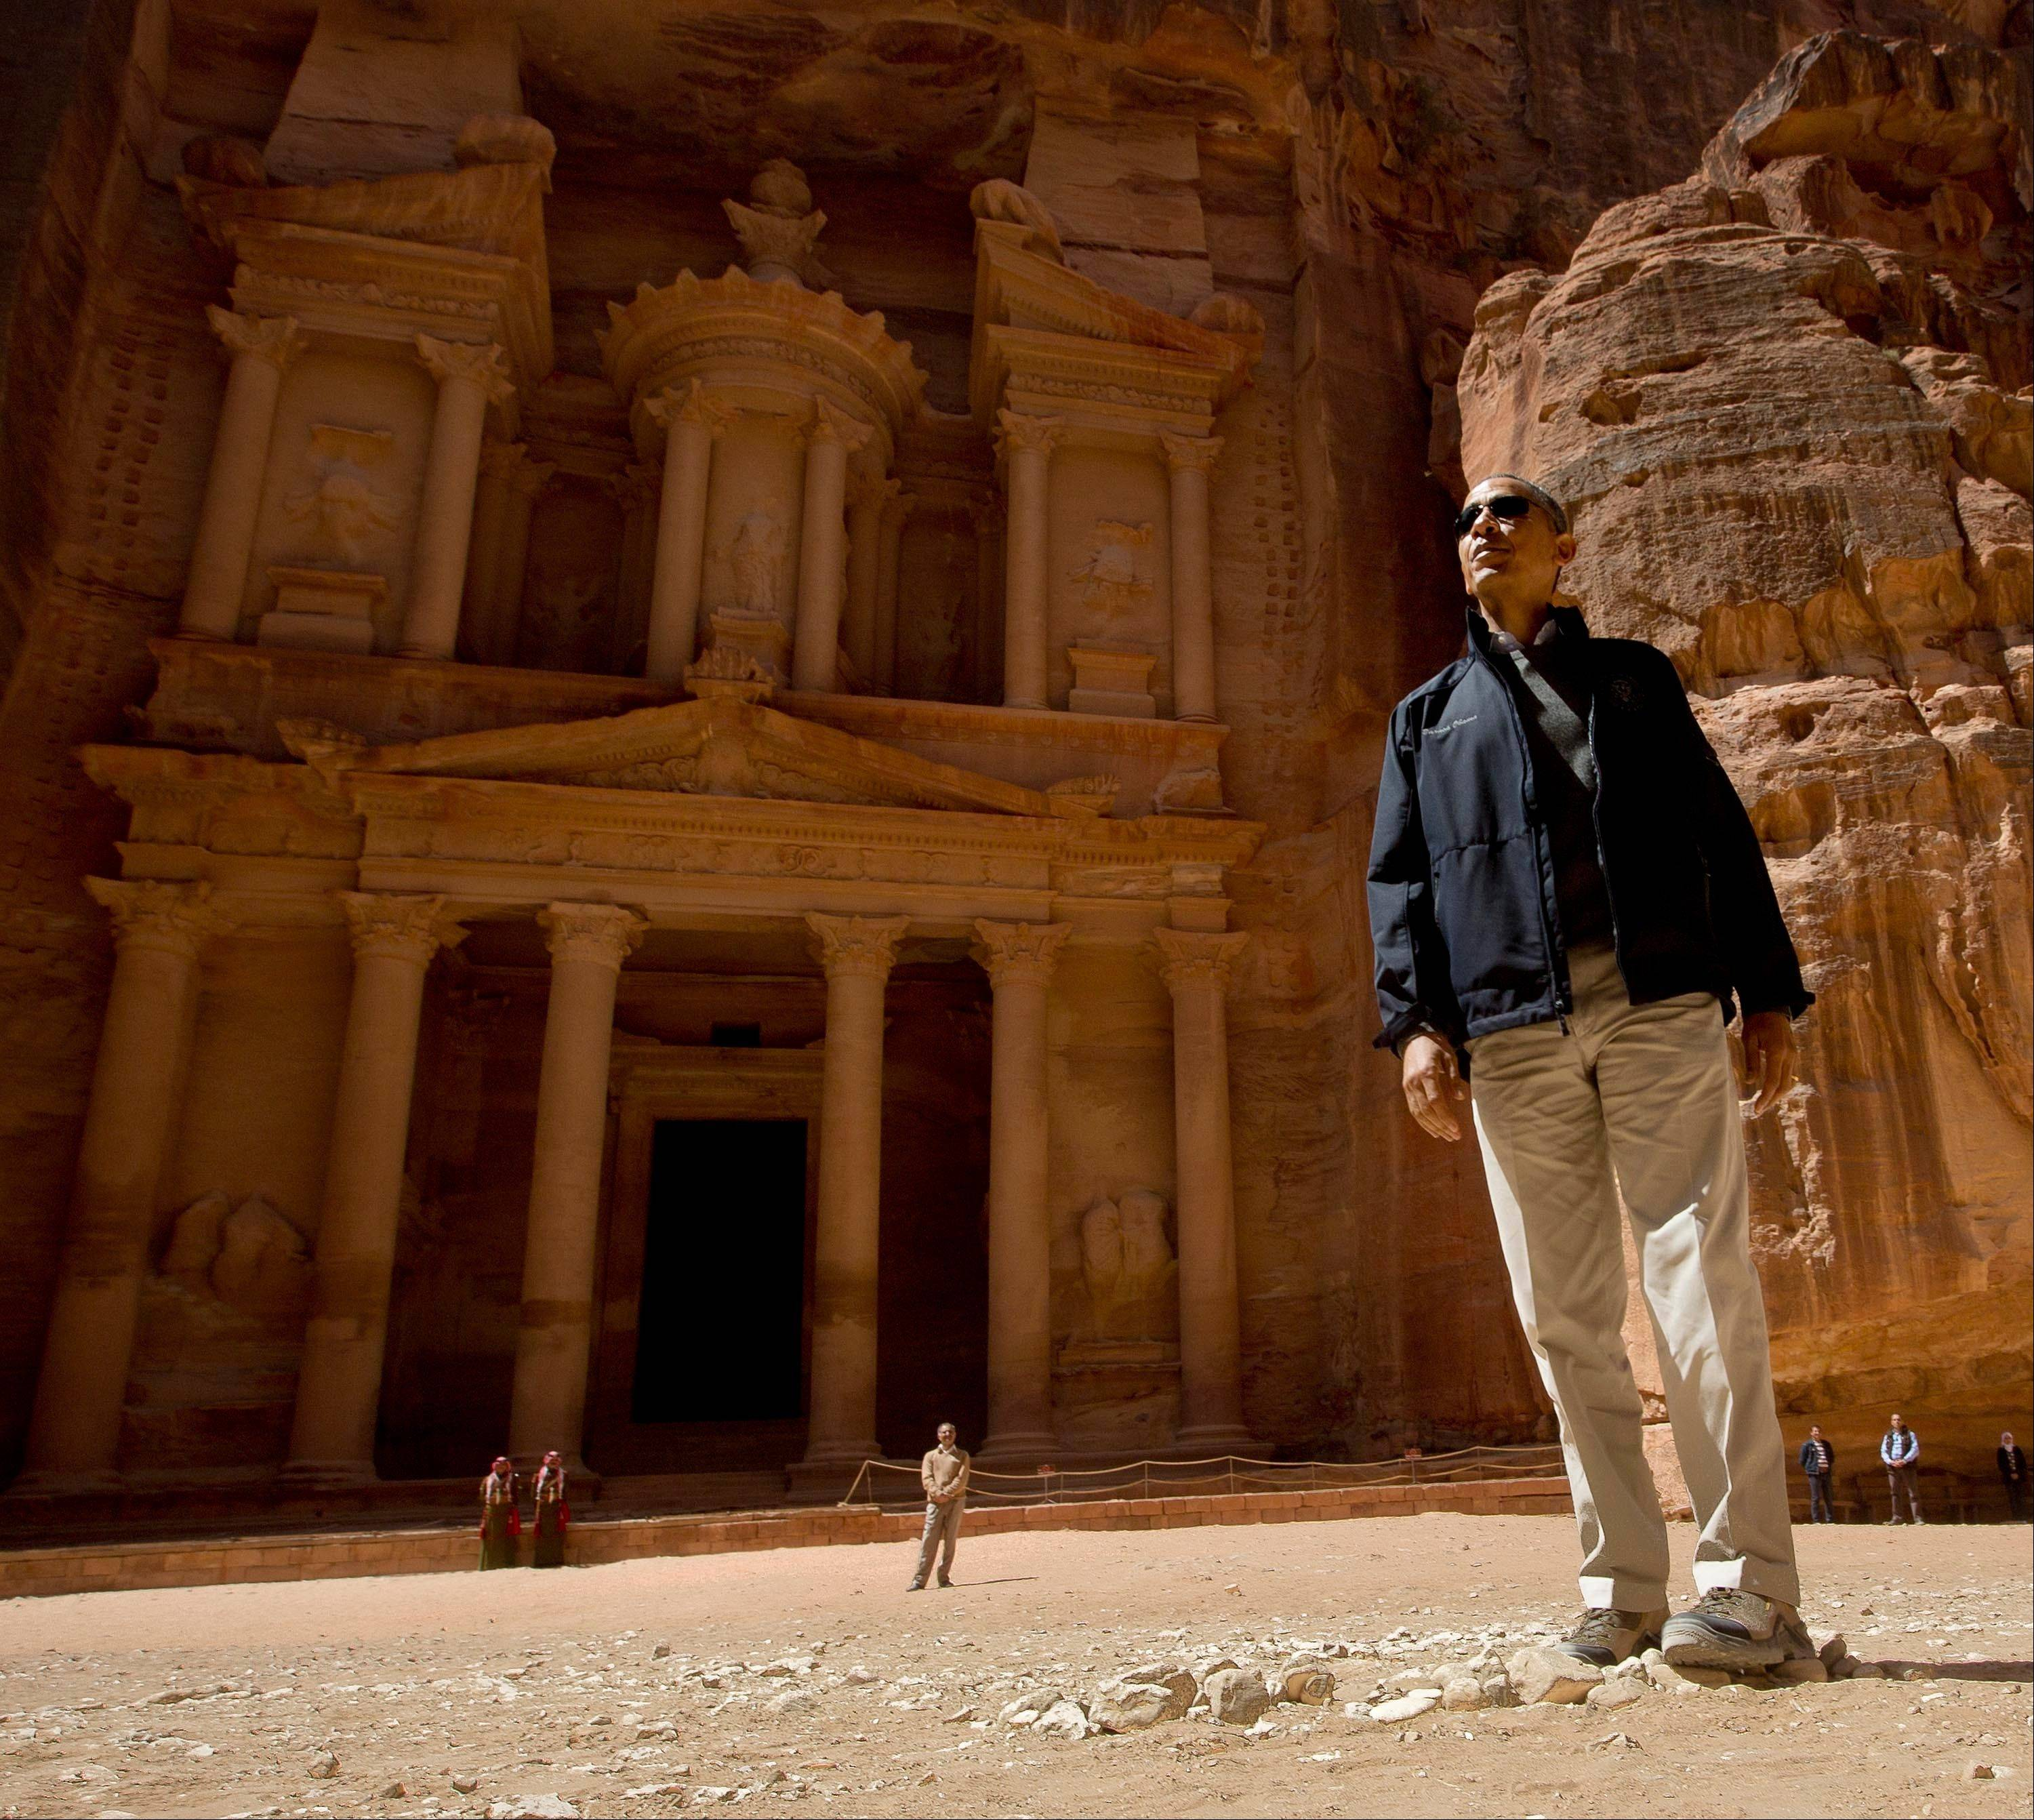 President Barack Obama stops to look at the Treasury Saturday during his tour of the ancient city of Petra in Jordan.